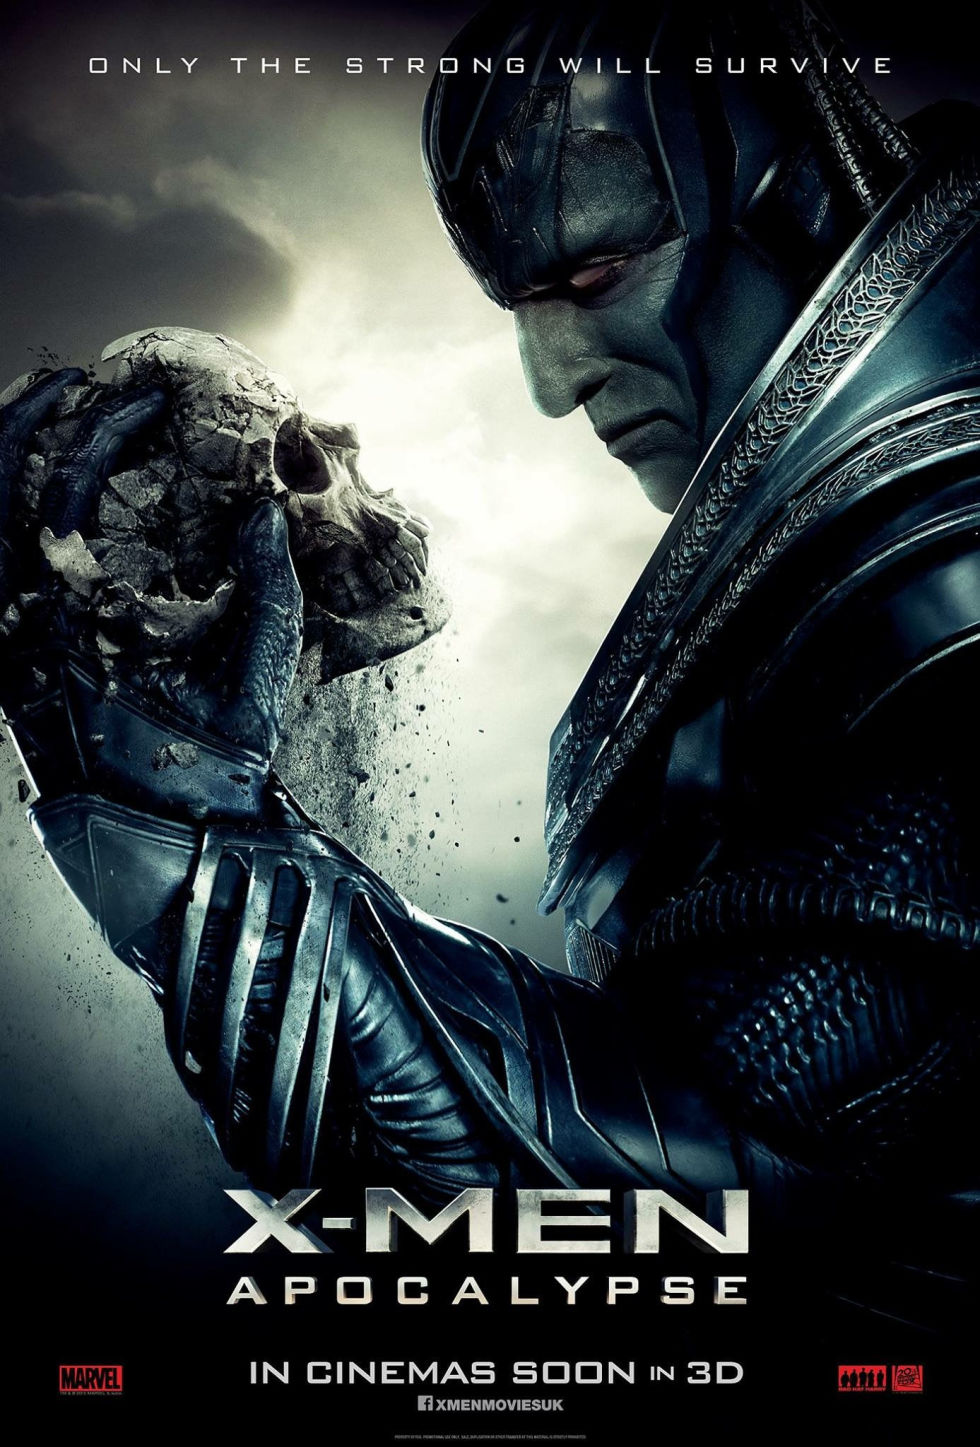 X-Men: Apocalypse Poster Released